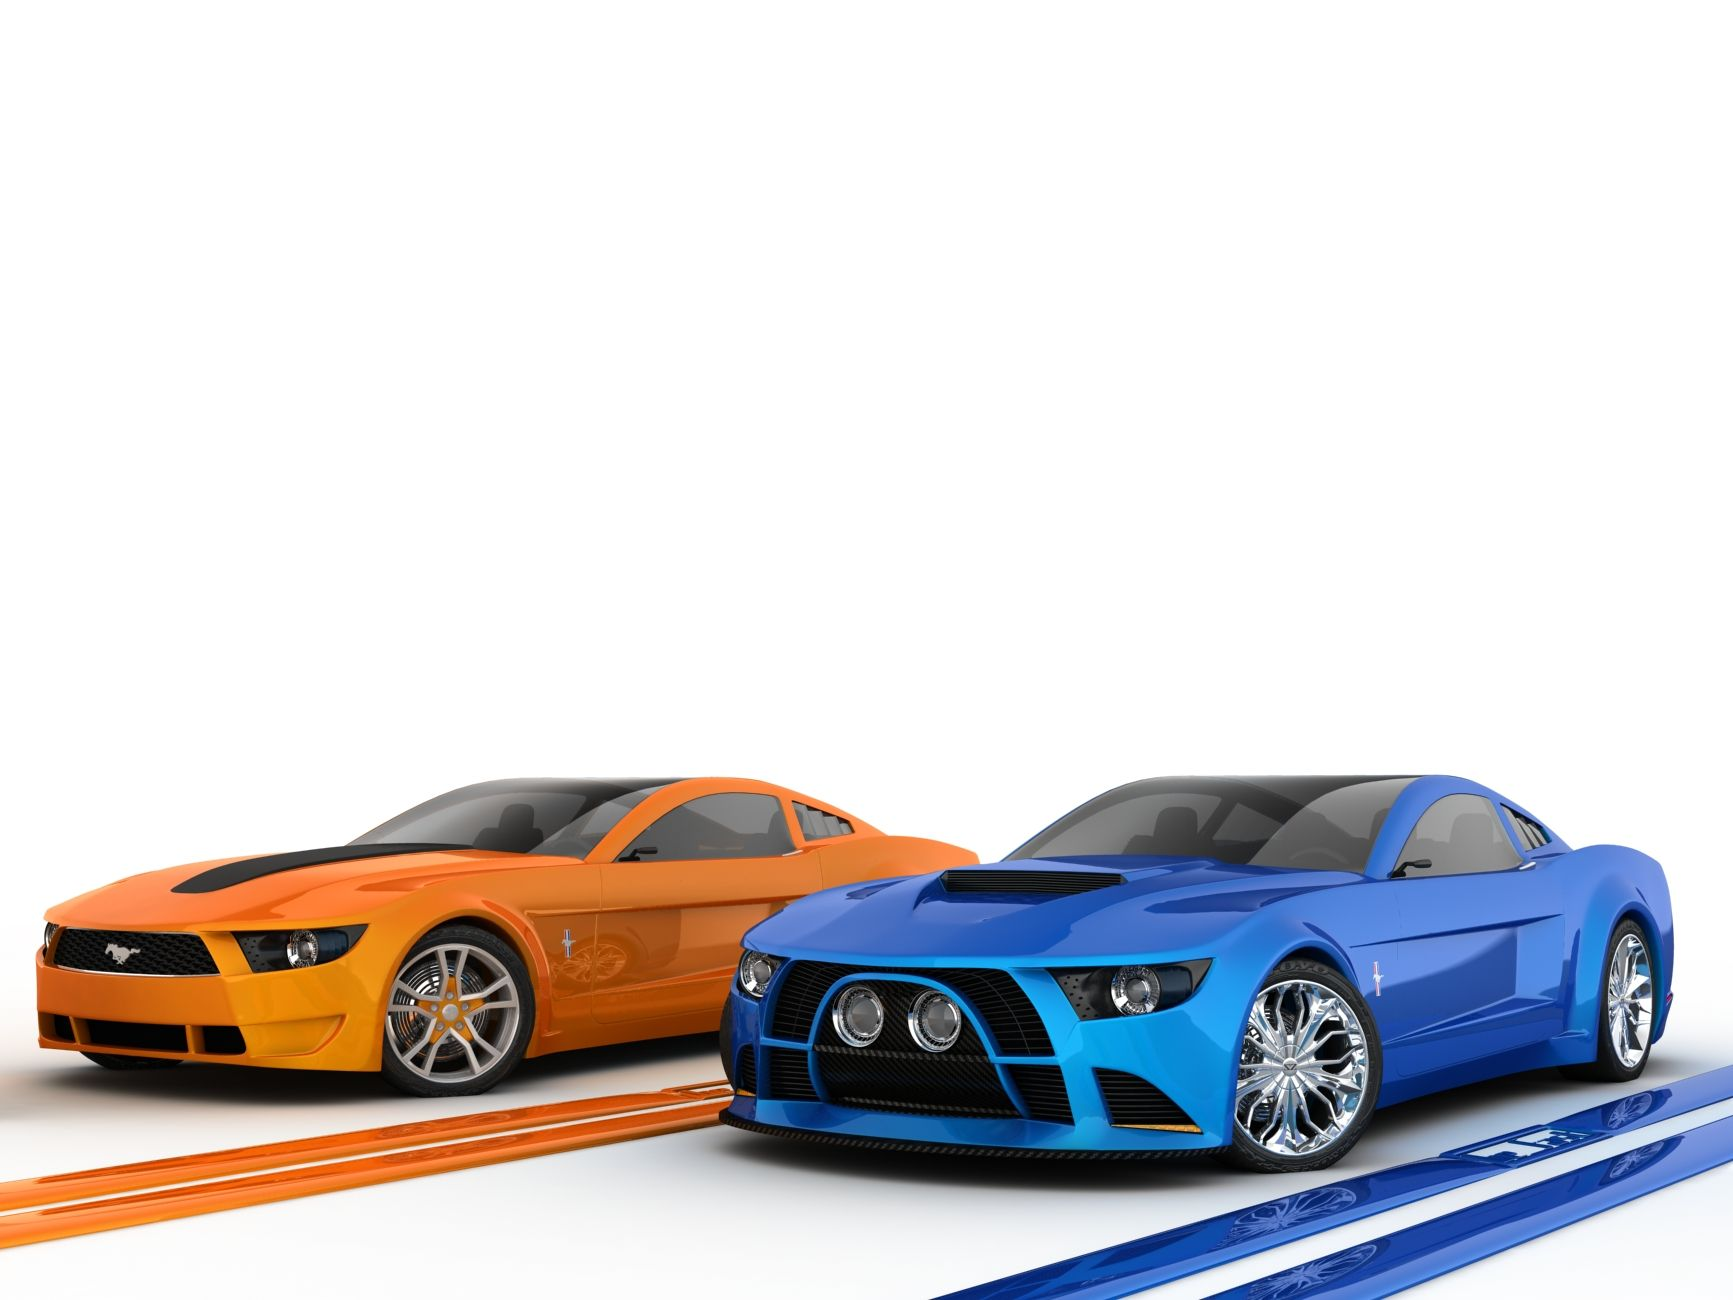 Mustang giugiaro ford mustang giugiaro concept community for cg artists